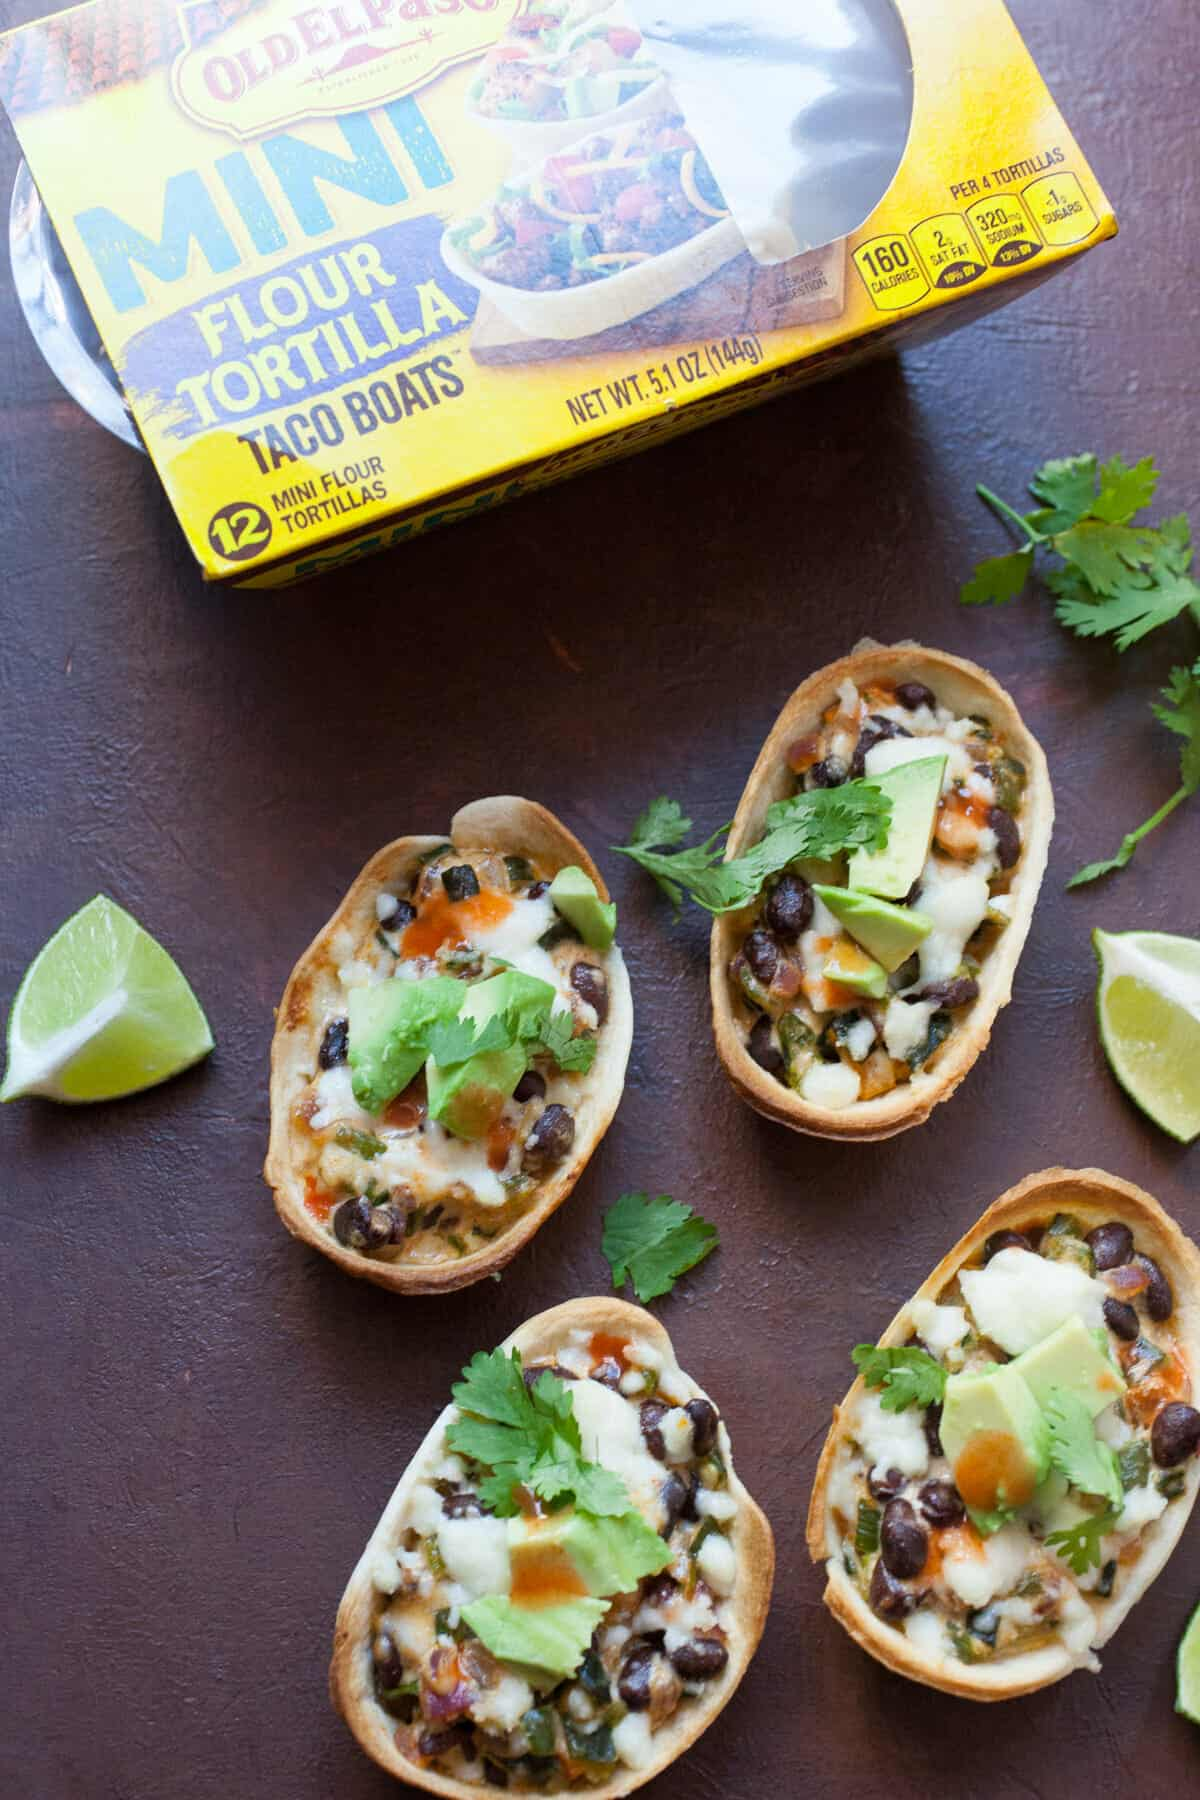 Creamed Pepper Taco Boats: These baked taco boats are stuffed with a creamed pepper mixture that's SO flavorful. Any Tex-Mex lover will not want to share.   macheesmo.com